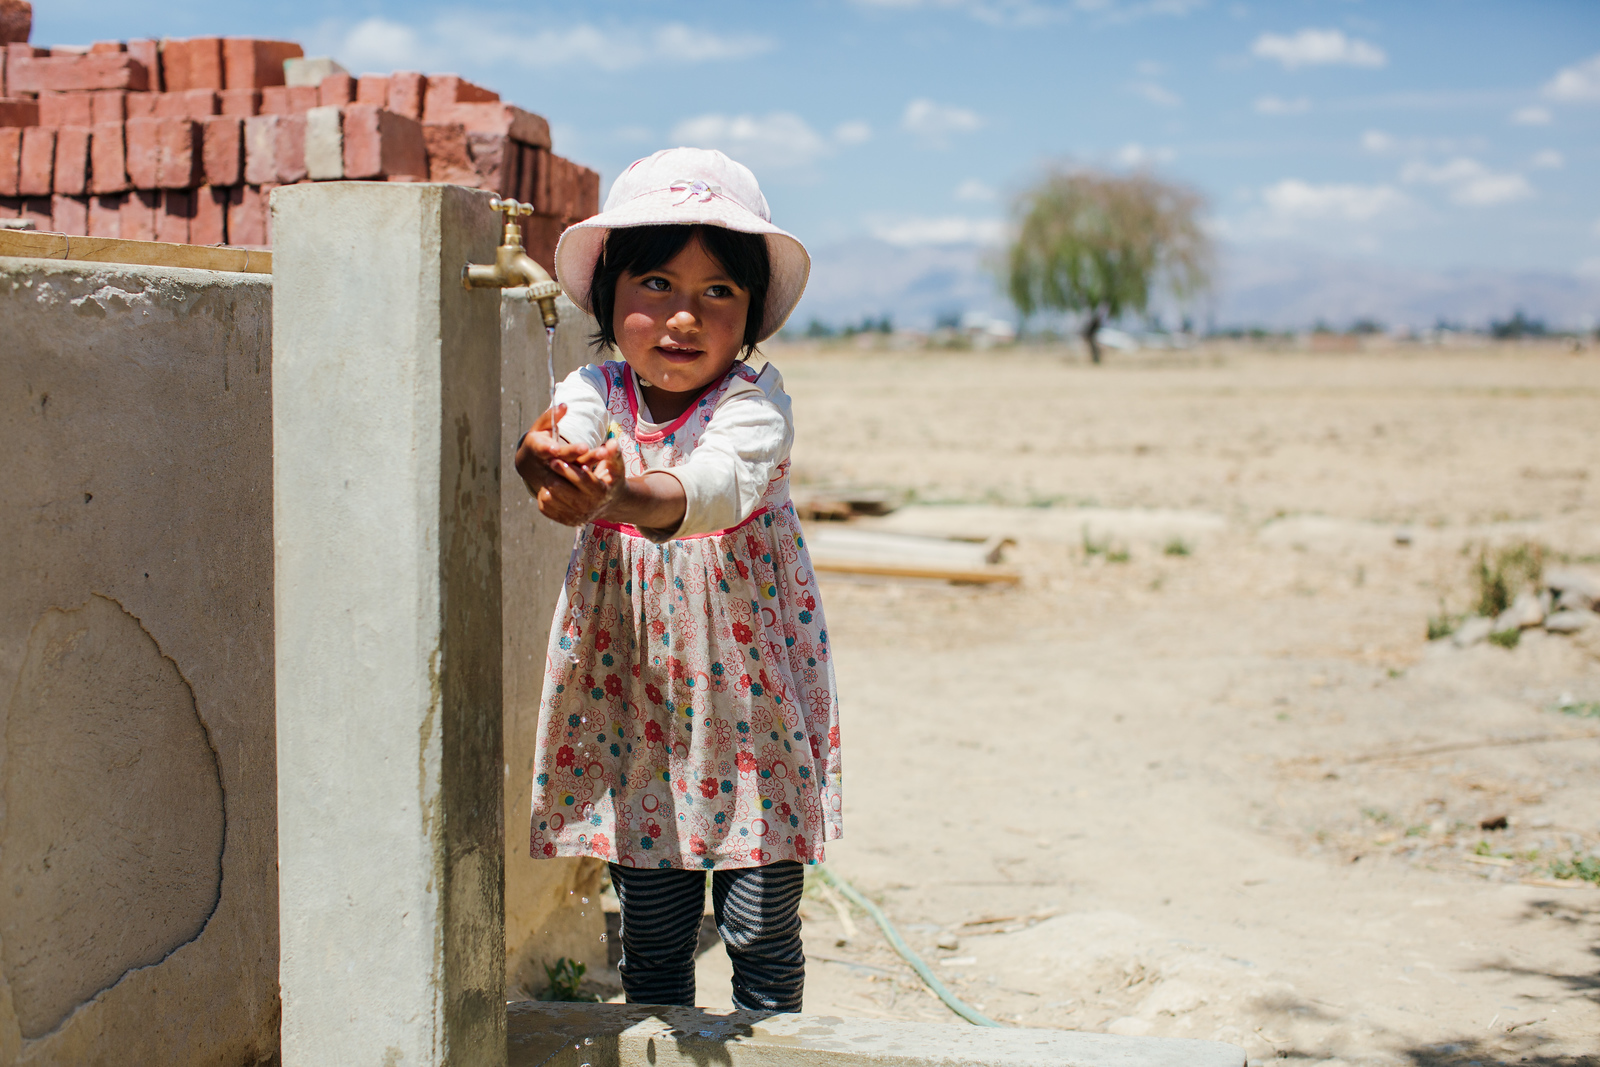 A young girl washes her hands at her family's water tap. Healthy handwashing habits instilled at a young age mean children grow up healthier (and happier!).